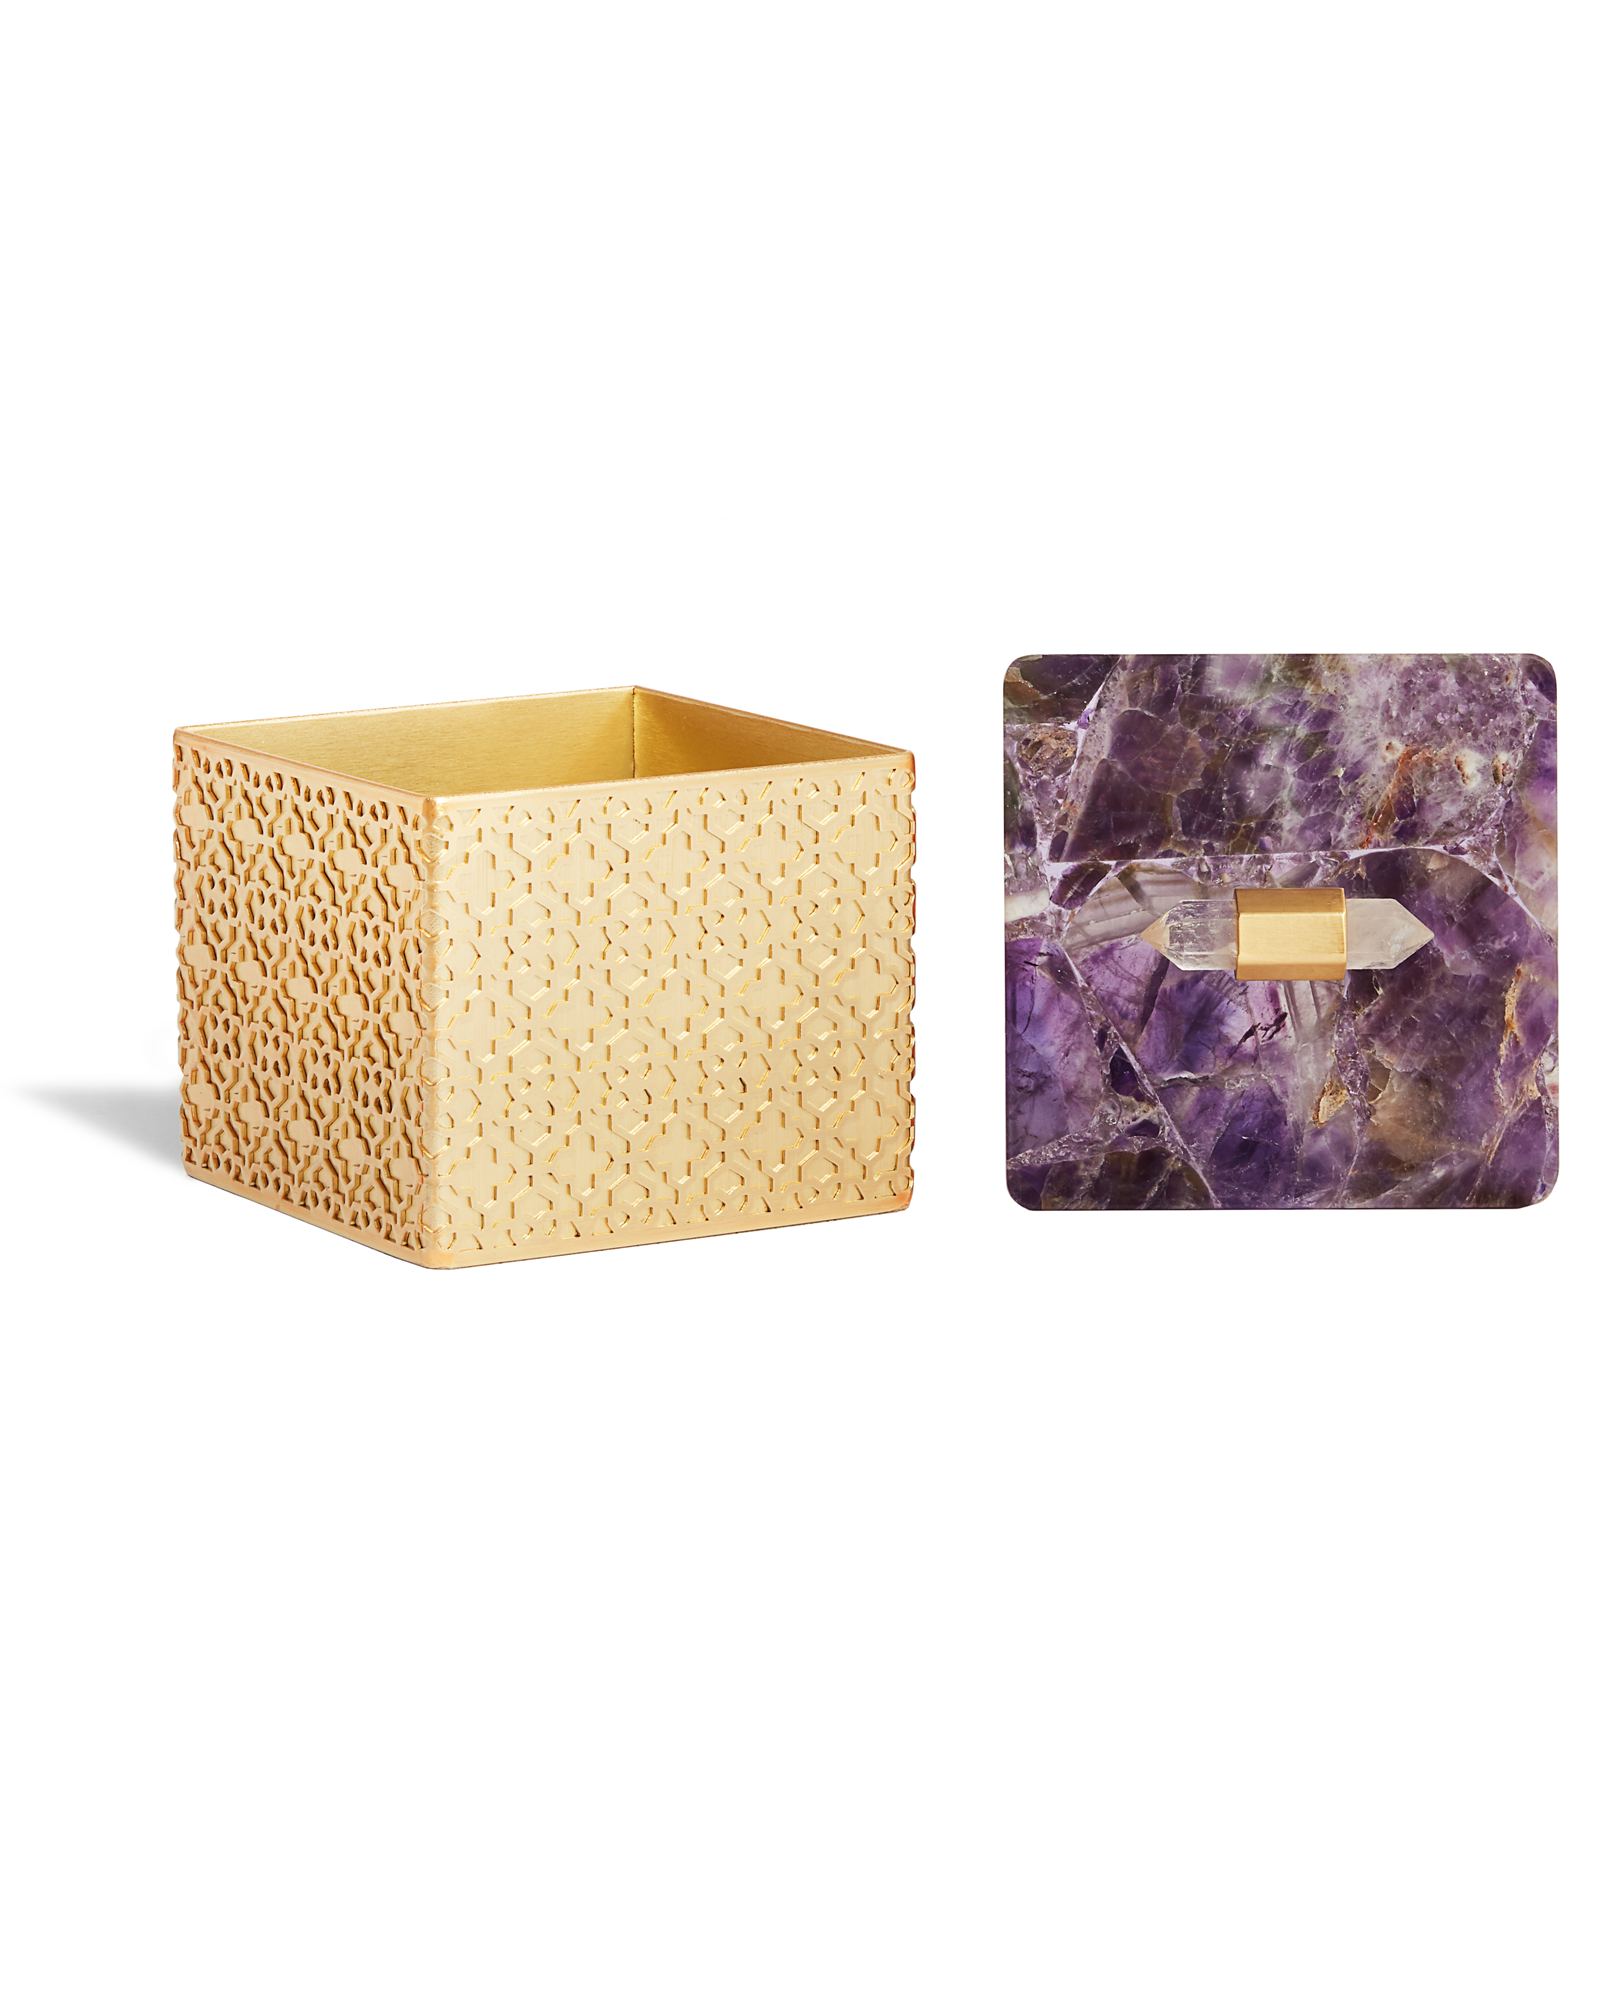 Square Filigree Box in Chevron Amethyst | Decor | Pinterest | Home ...